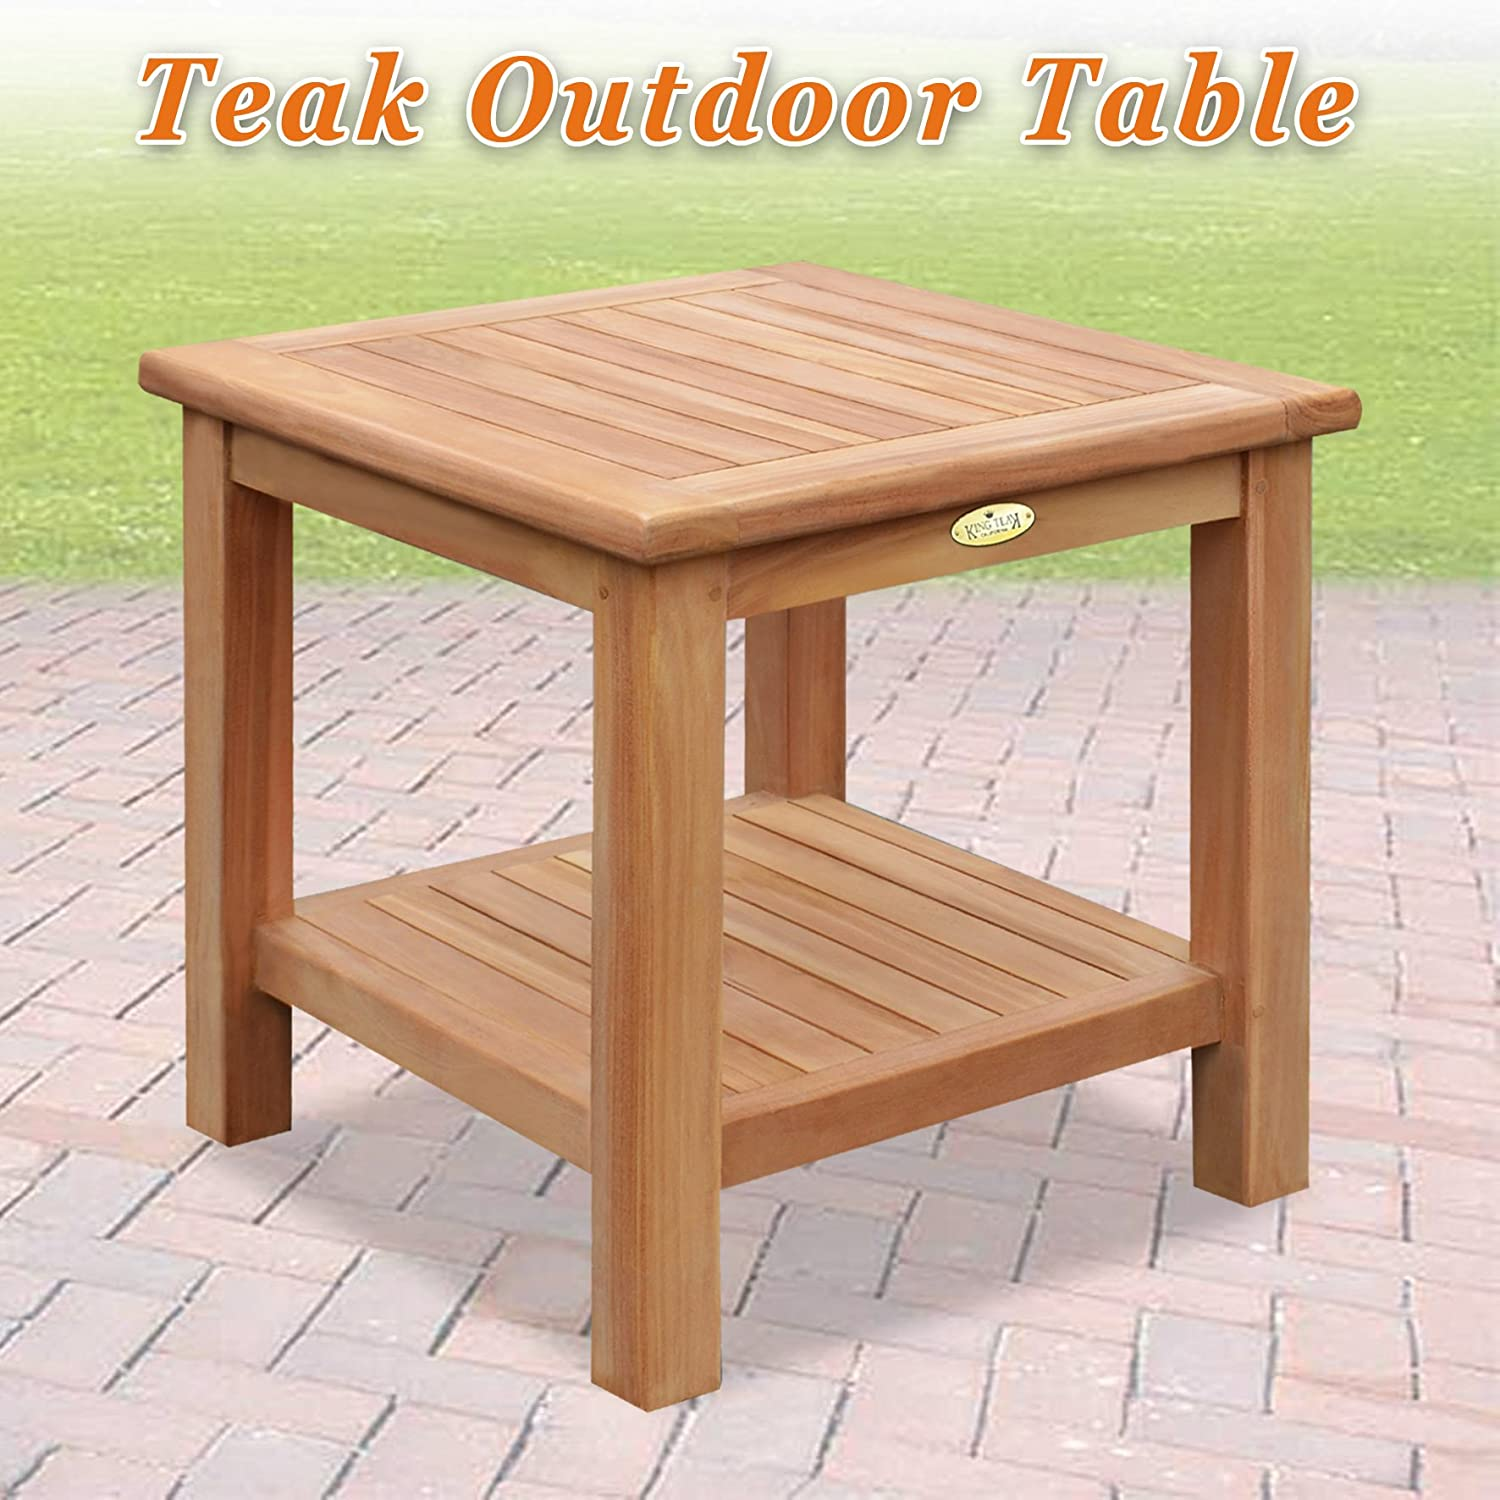 Amazon com strong camel teak wood side table with shelf 19 7 square size furniture garden outdoor